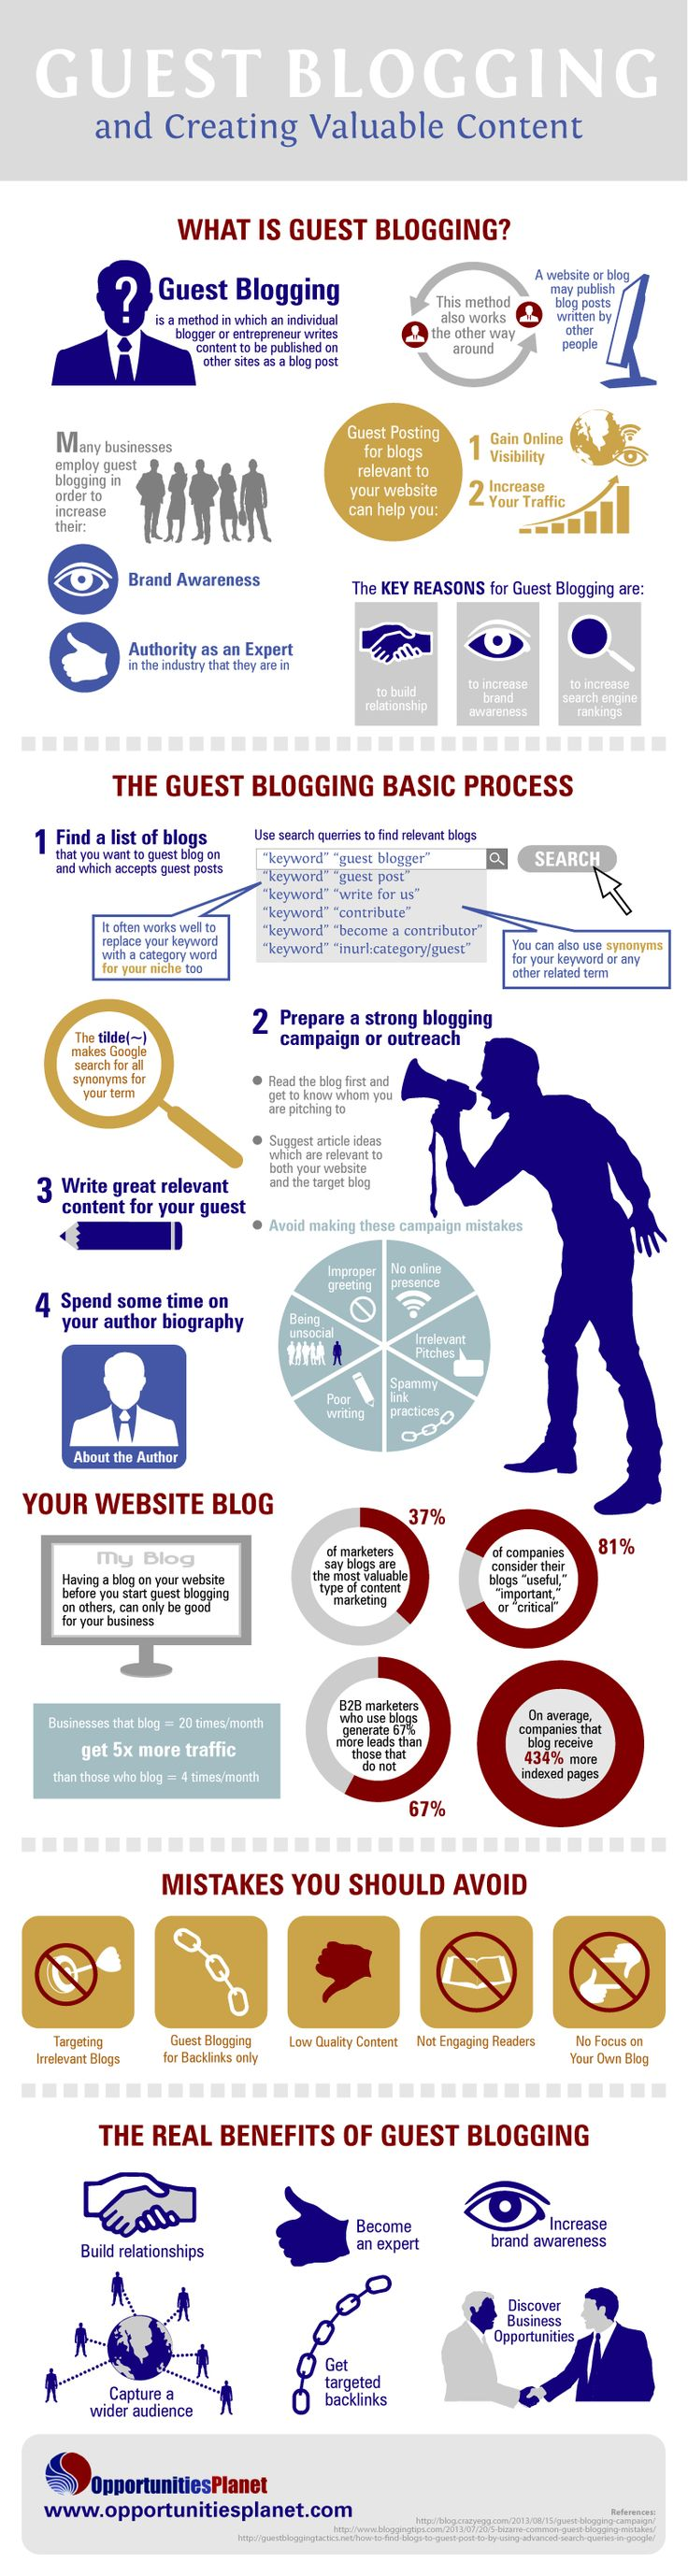 Why Guest Blogging?